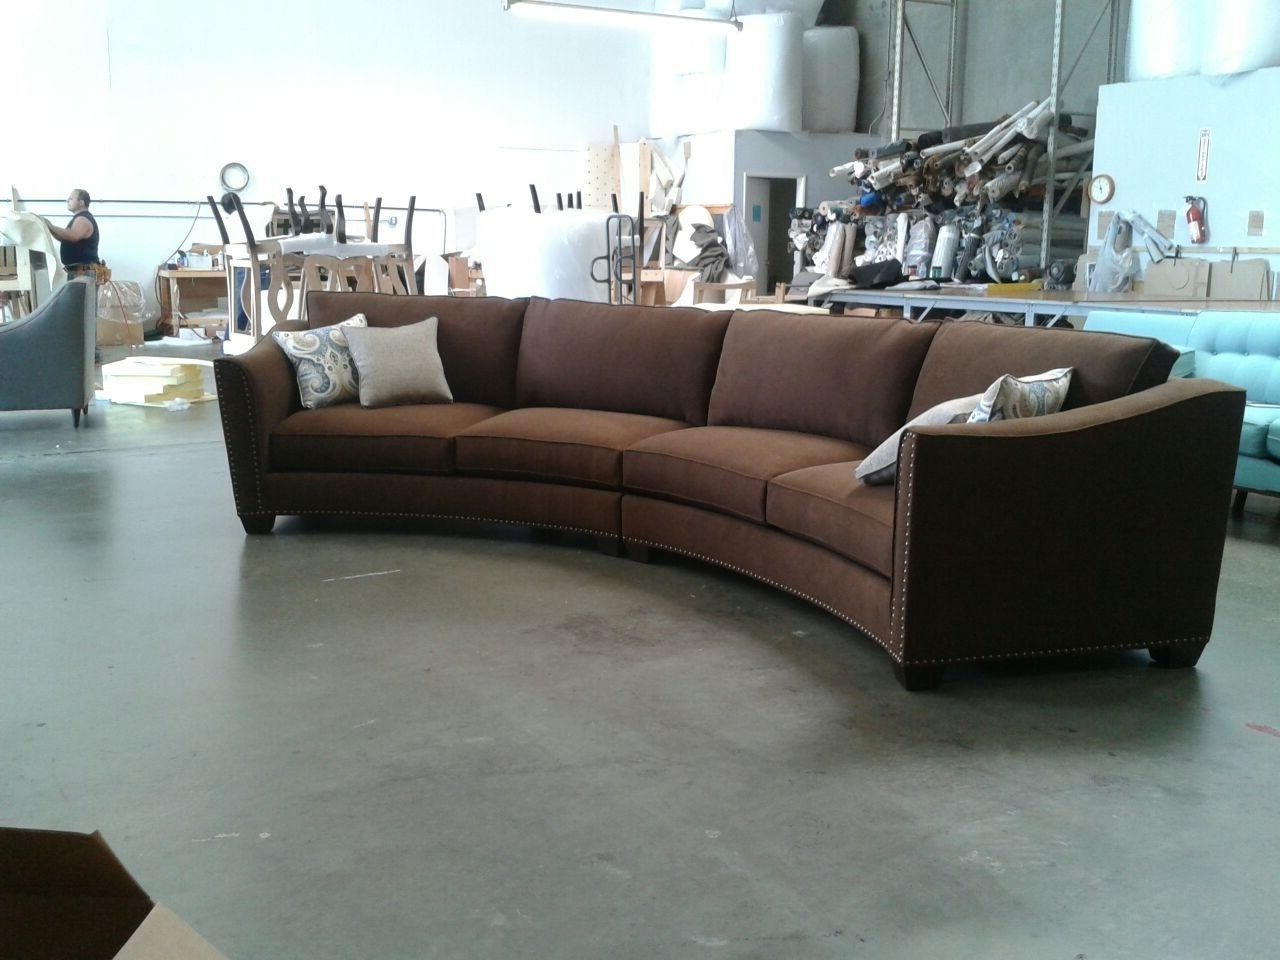 2018 Circular Sectional Sofas Pertaining To Curved Sectional Sofa Set – Rich Comfortable Upholstered Fabric (View 1 of 20)